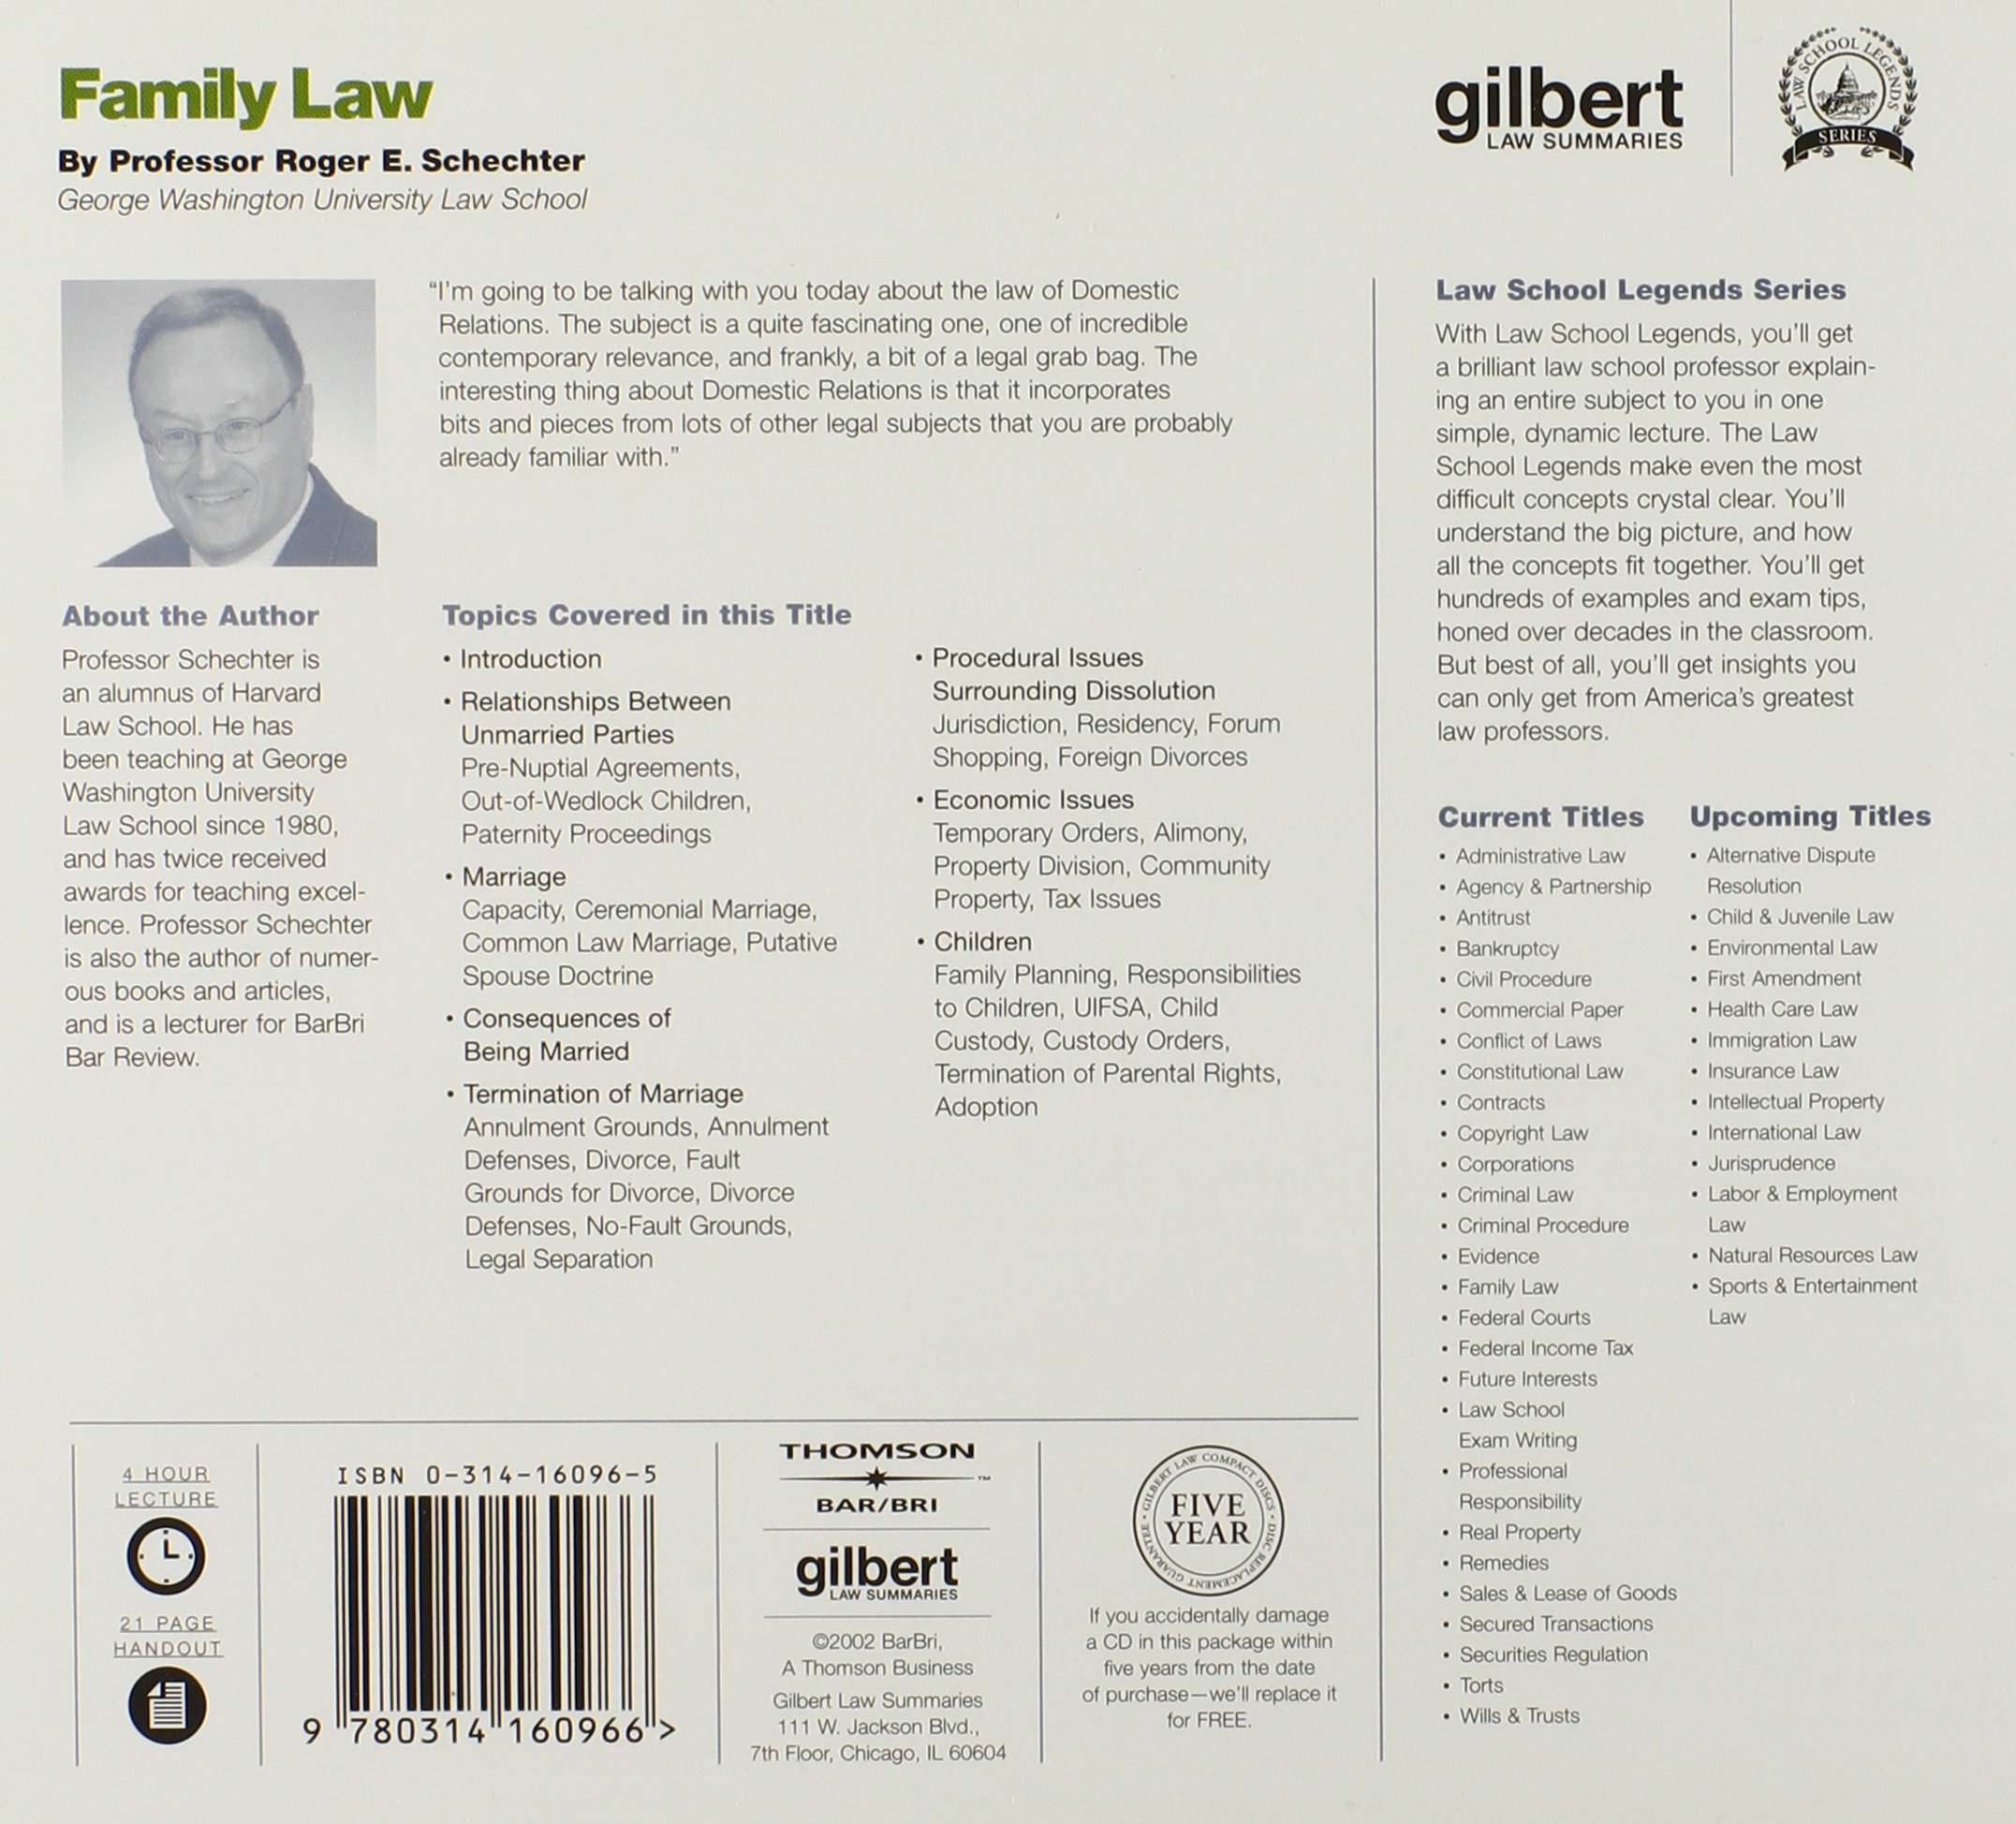 Family Law (Law School Legends Audio Series): Amazon.co.uk: Roger  Schechter: 9780314160966: Books